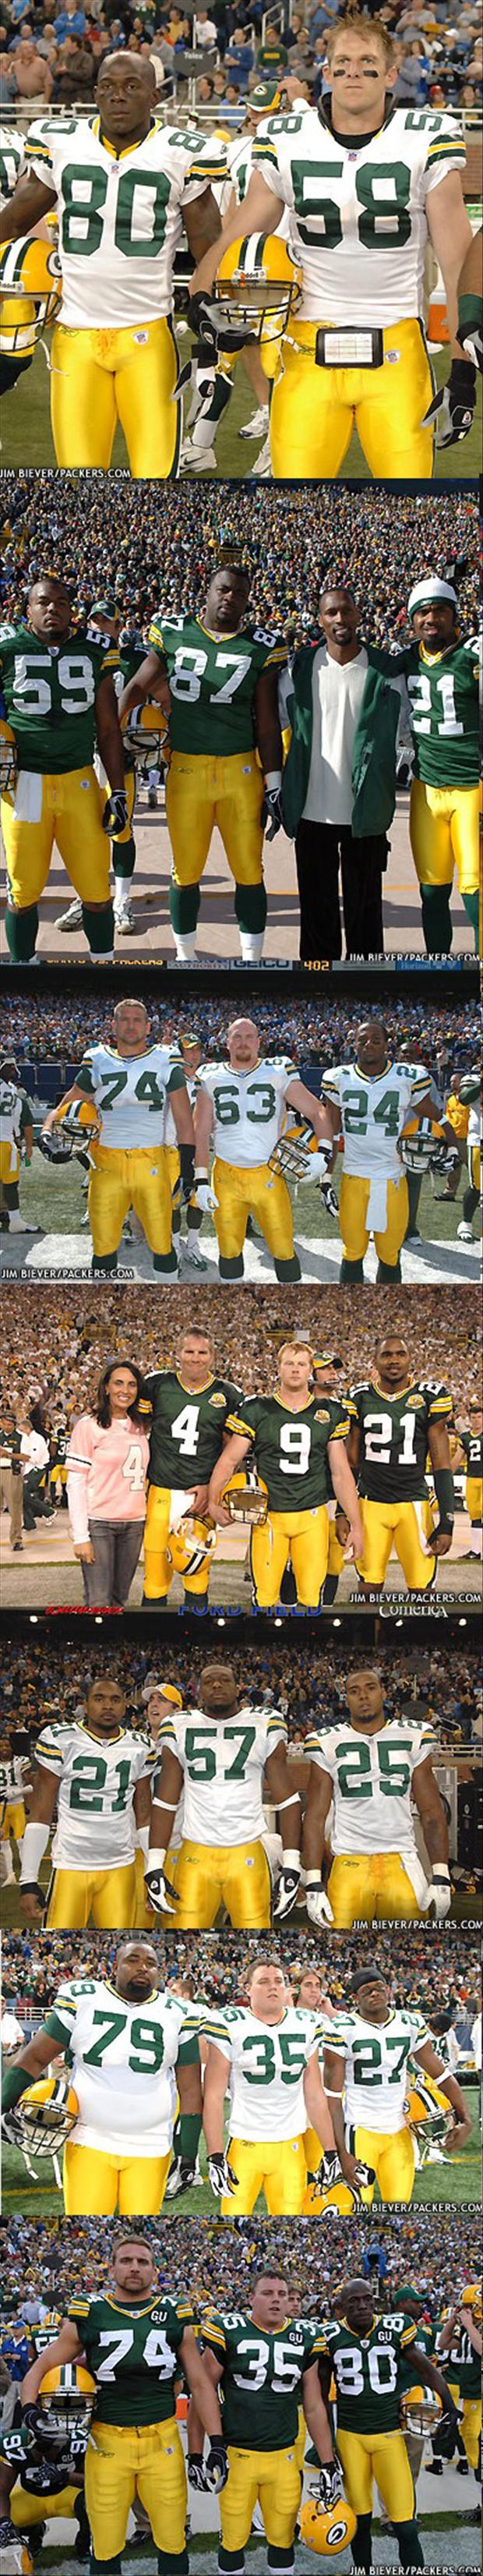 Aaron Rodgers Photobomb pictures (3)